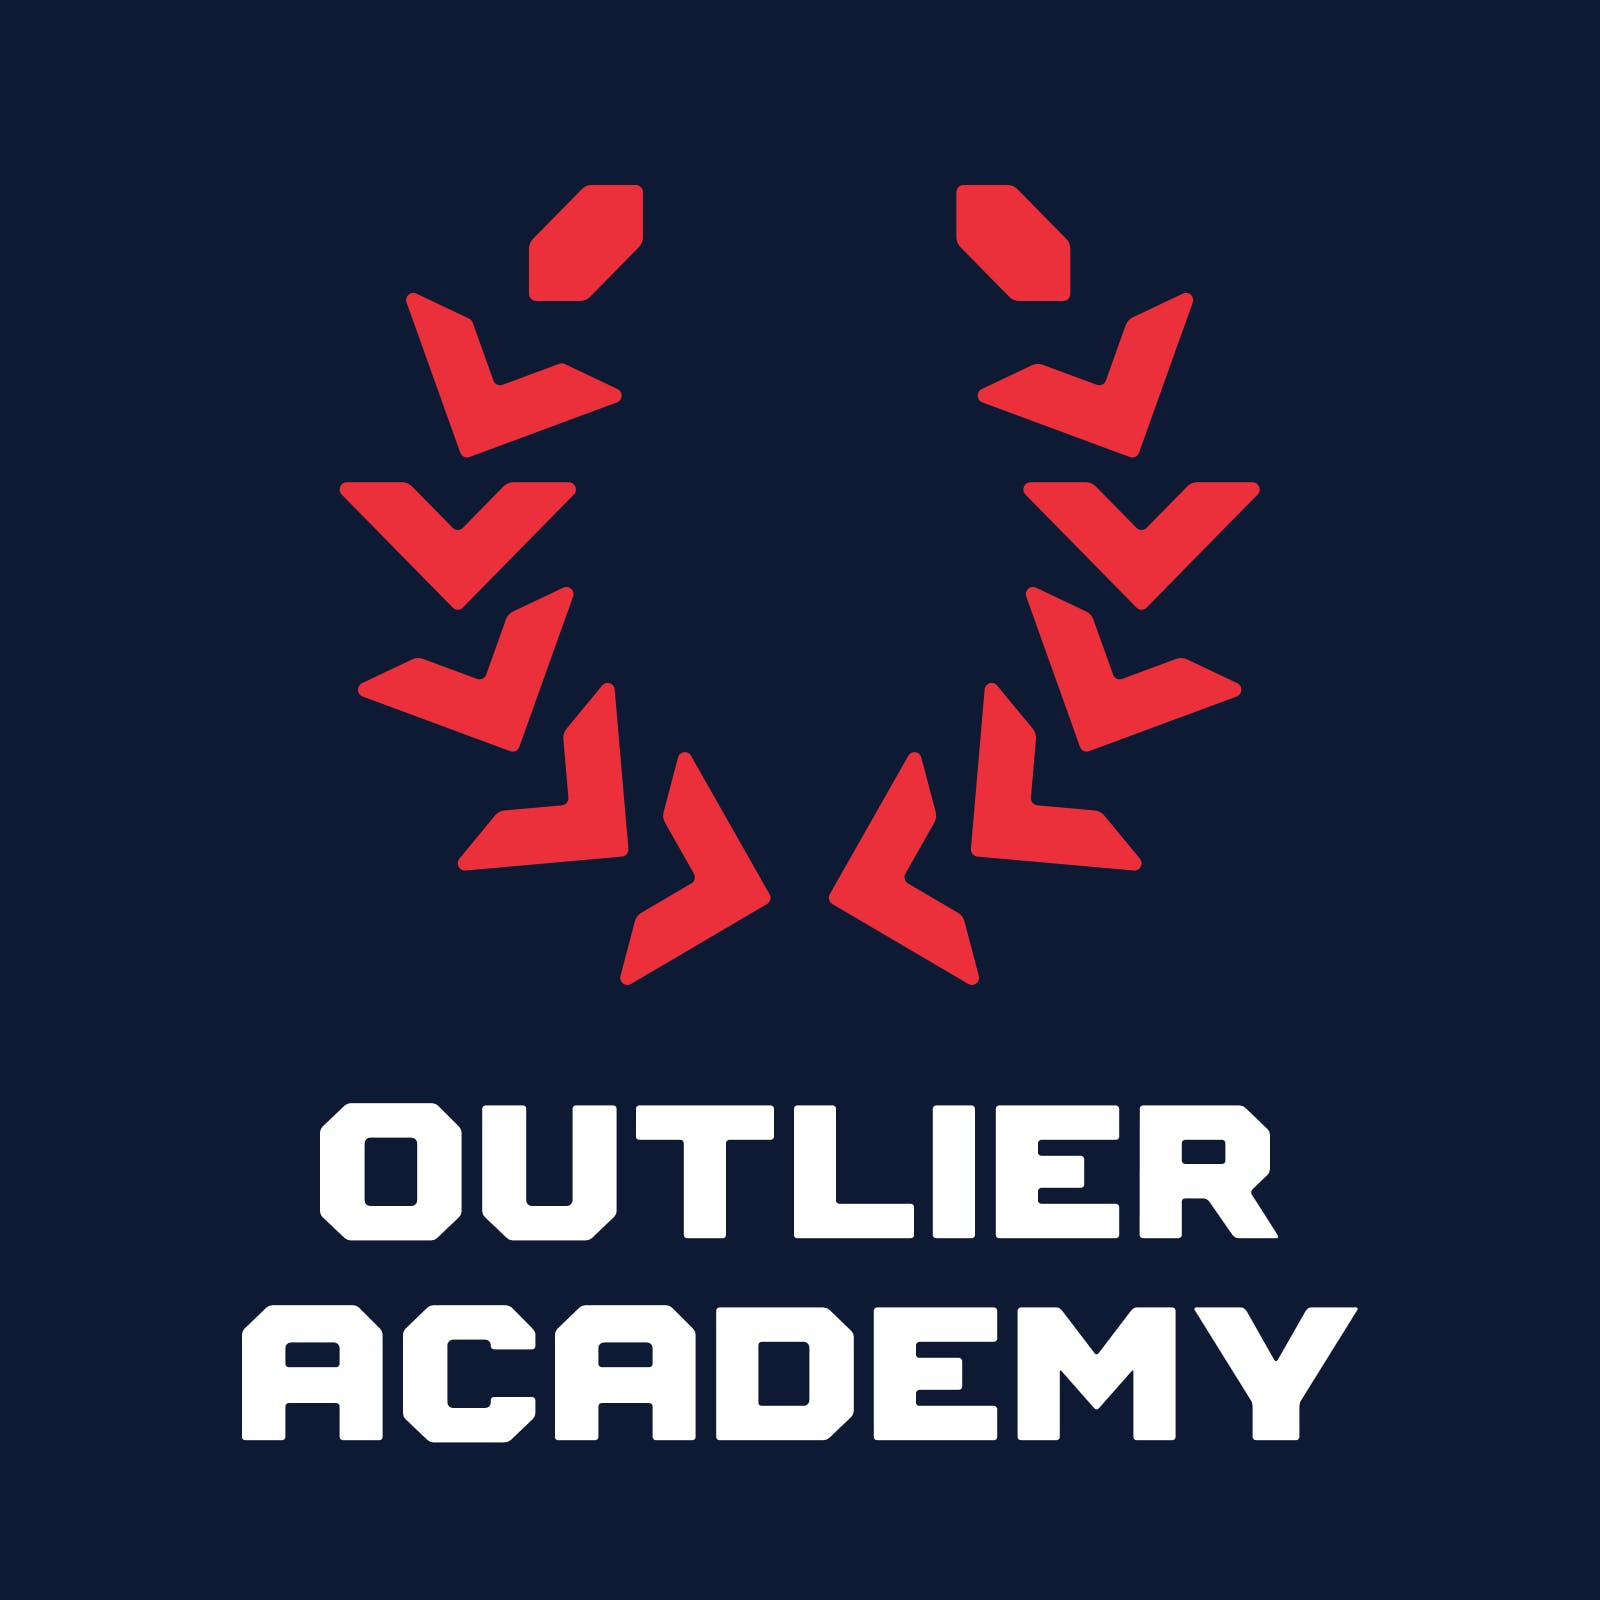 #32 Outliers is now Outlier Academy. New name, same great podcast.